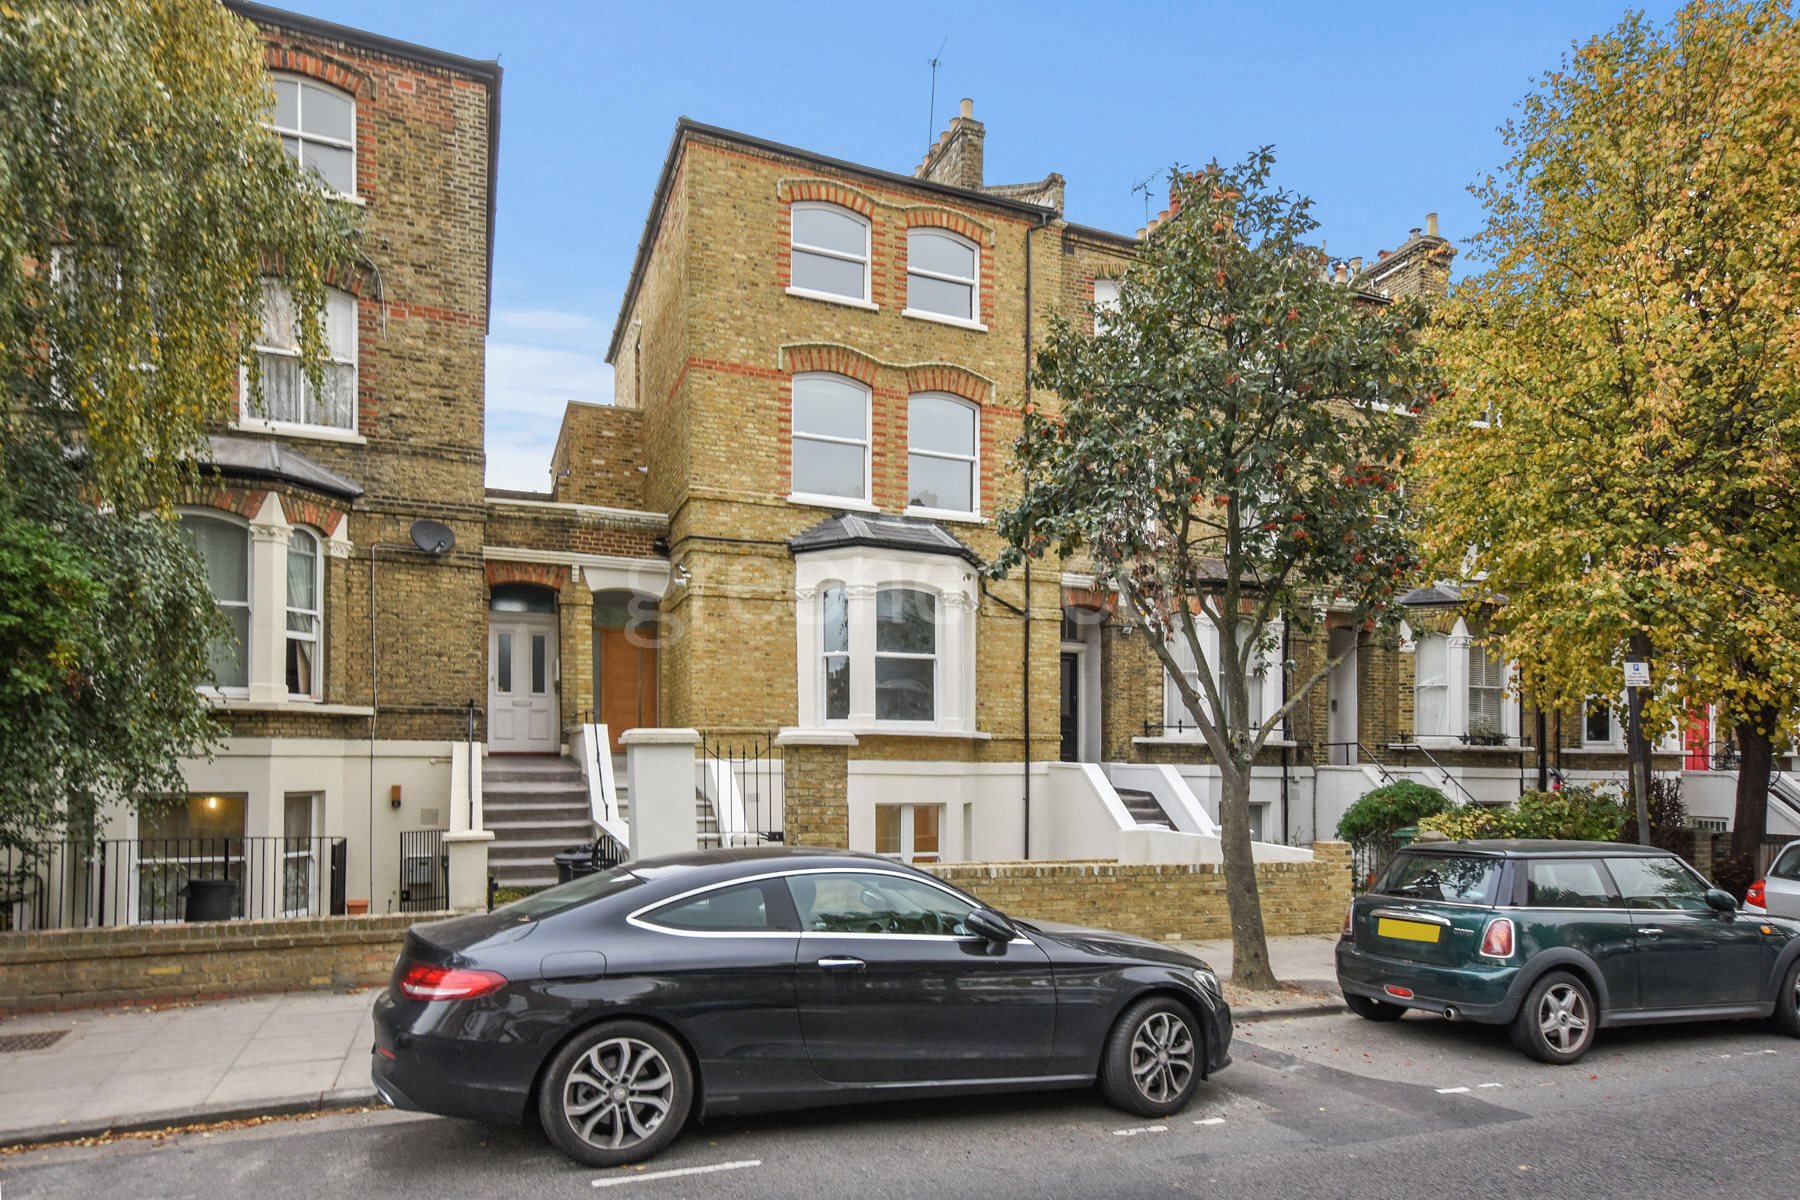 House for sale in Tufnell Park Road, Tufnell Park, London, N7